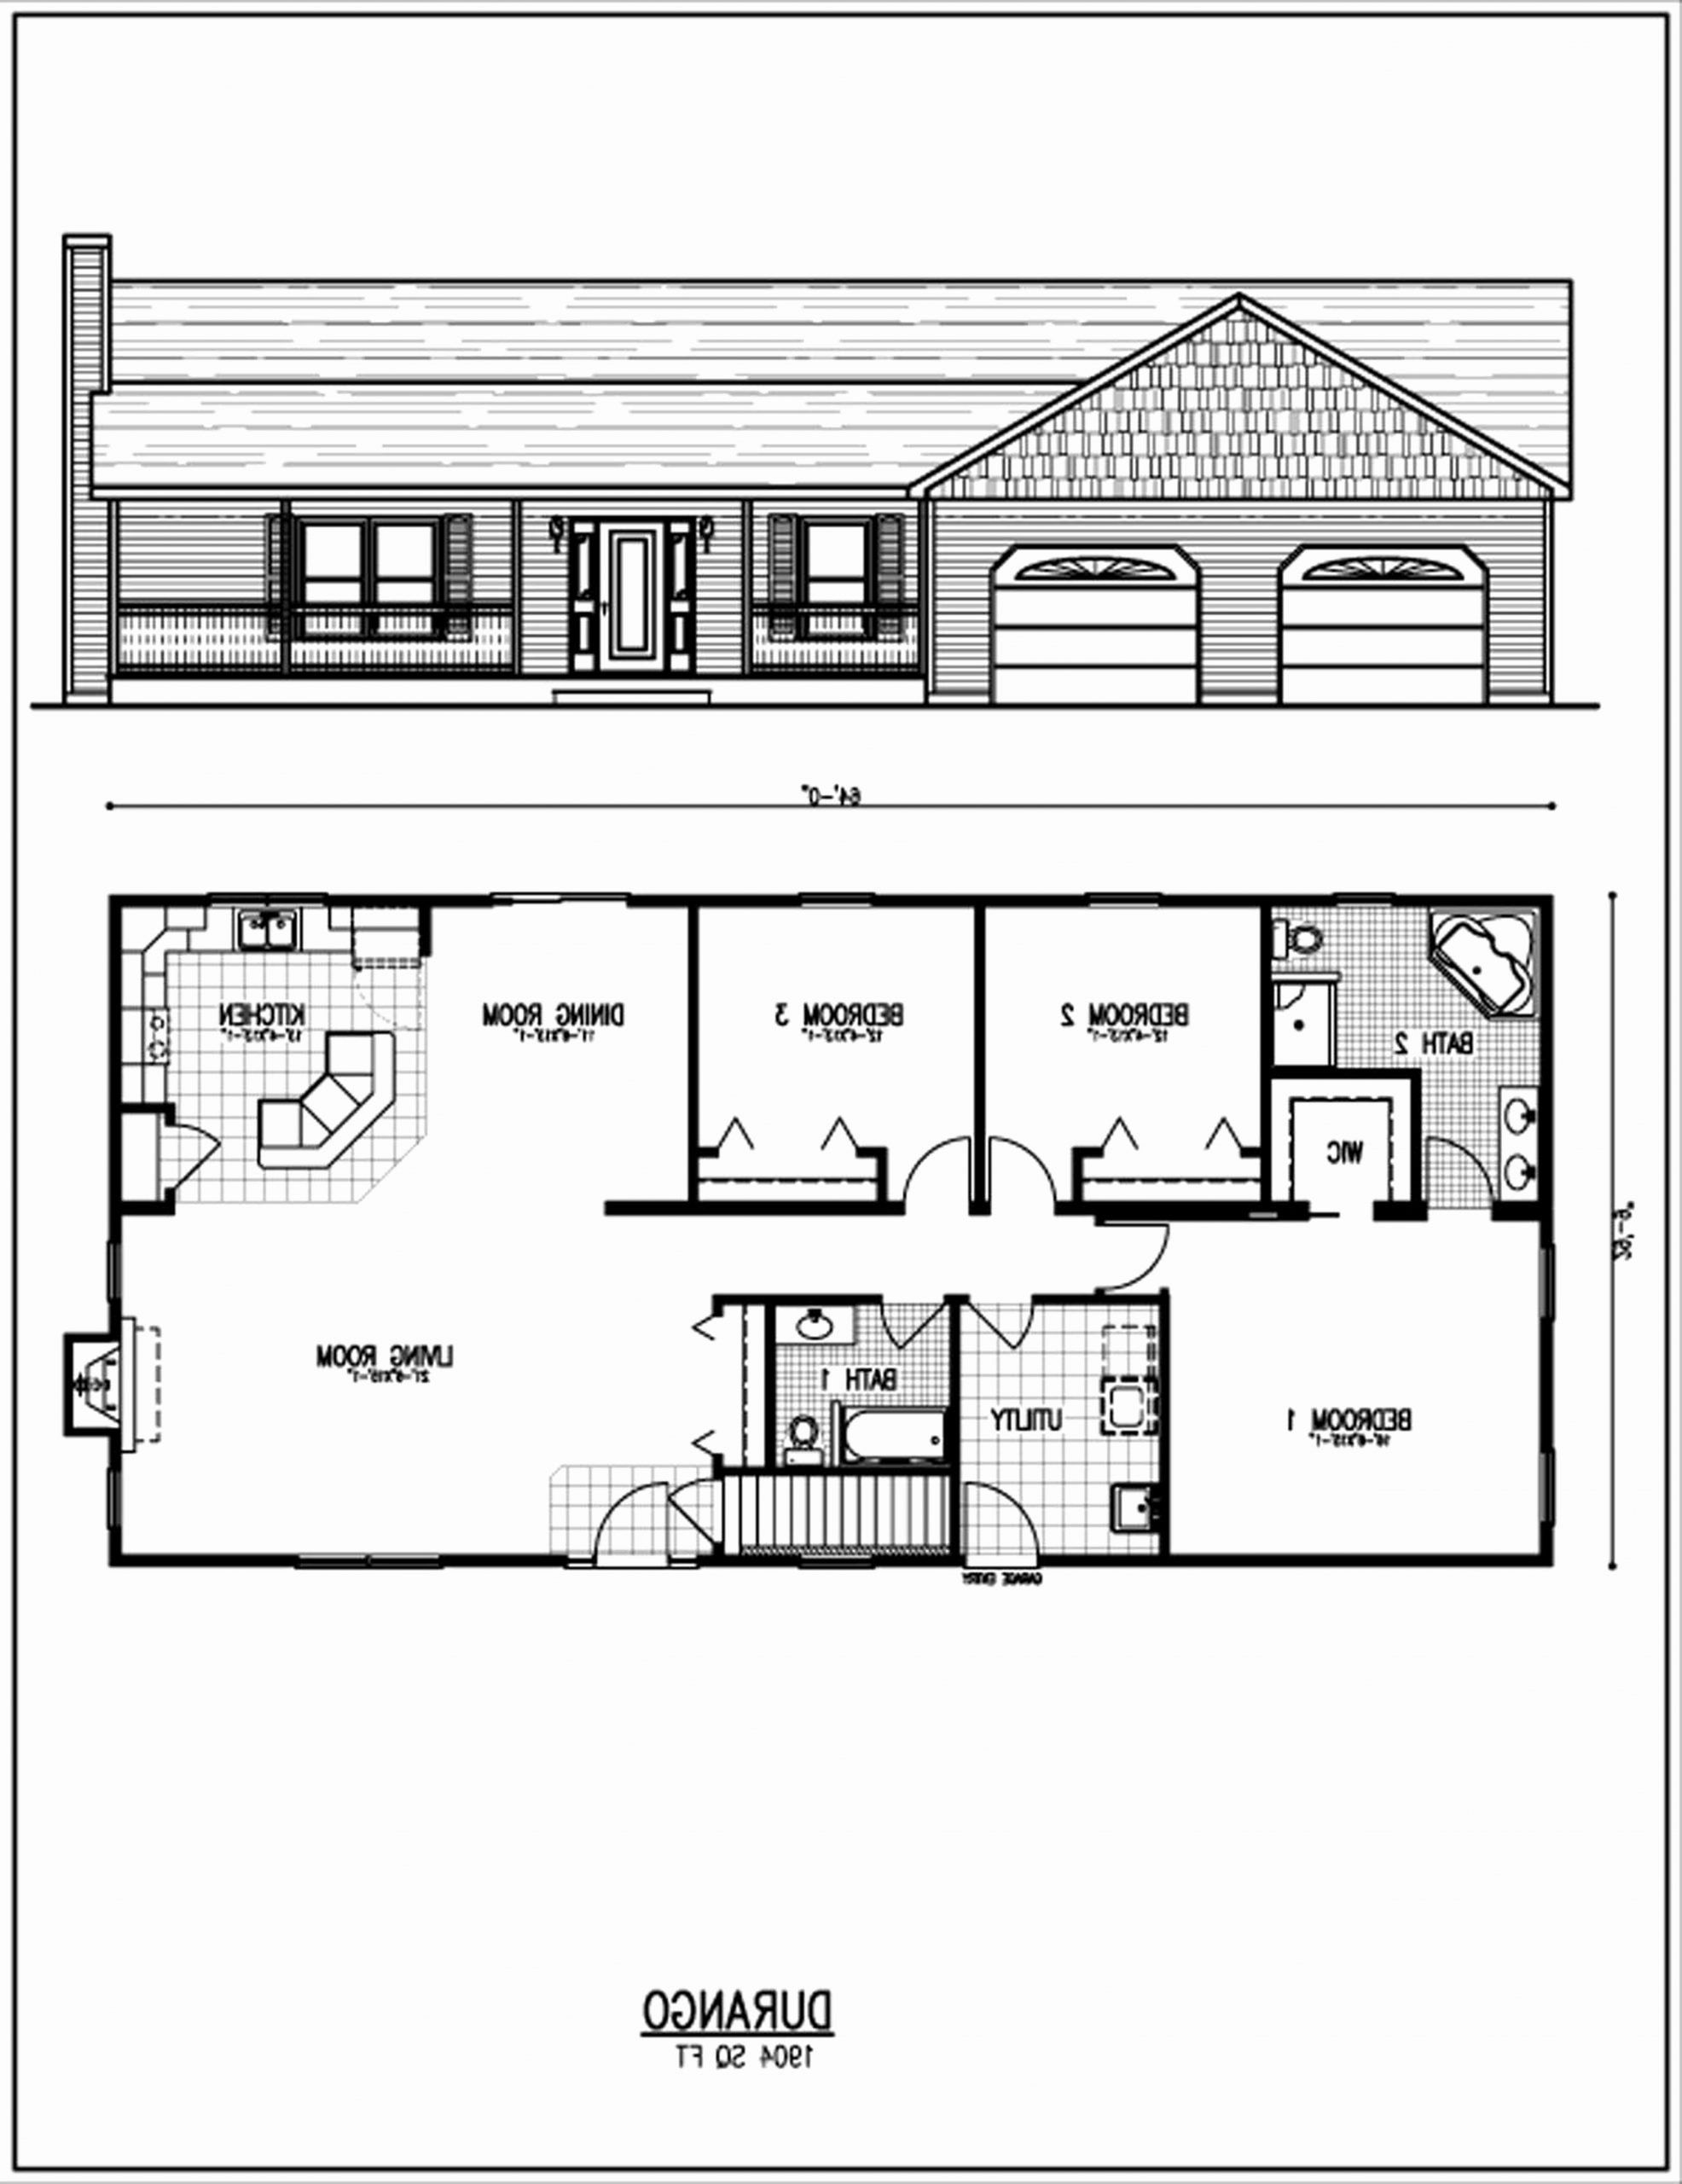 Basic Ranch Style House Plans Inspirational Interior Home Decor Plan Bedroom Ranch House Floor Plans In 2020 Ranch House Floor Plans Free House Plans Ranch House Plans